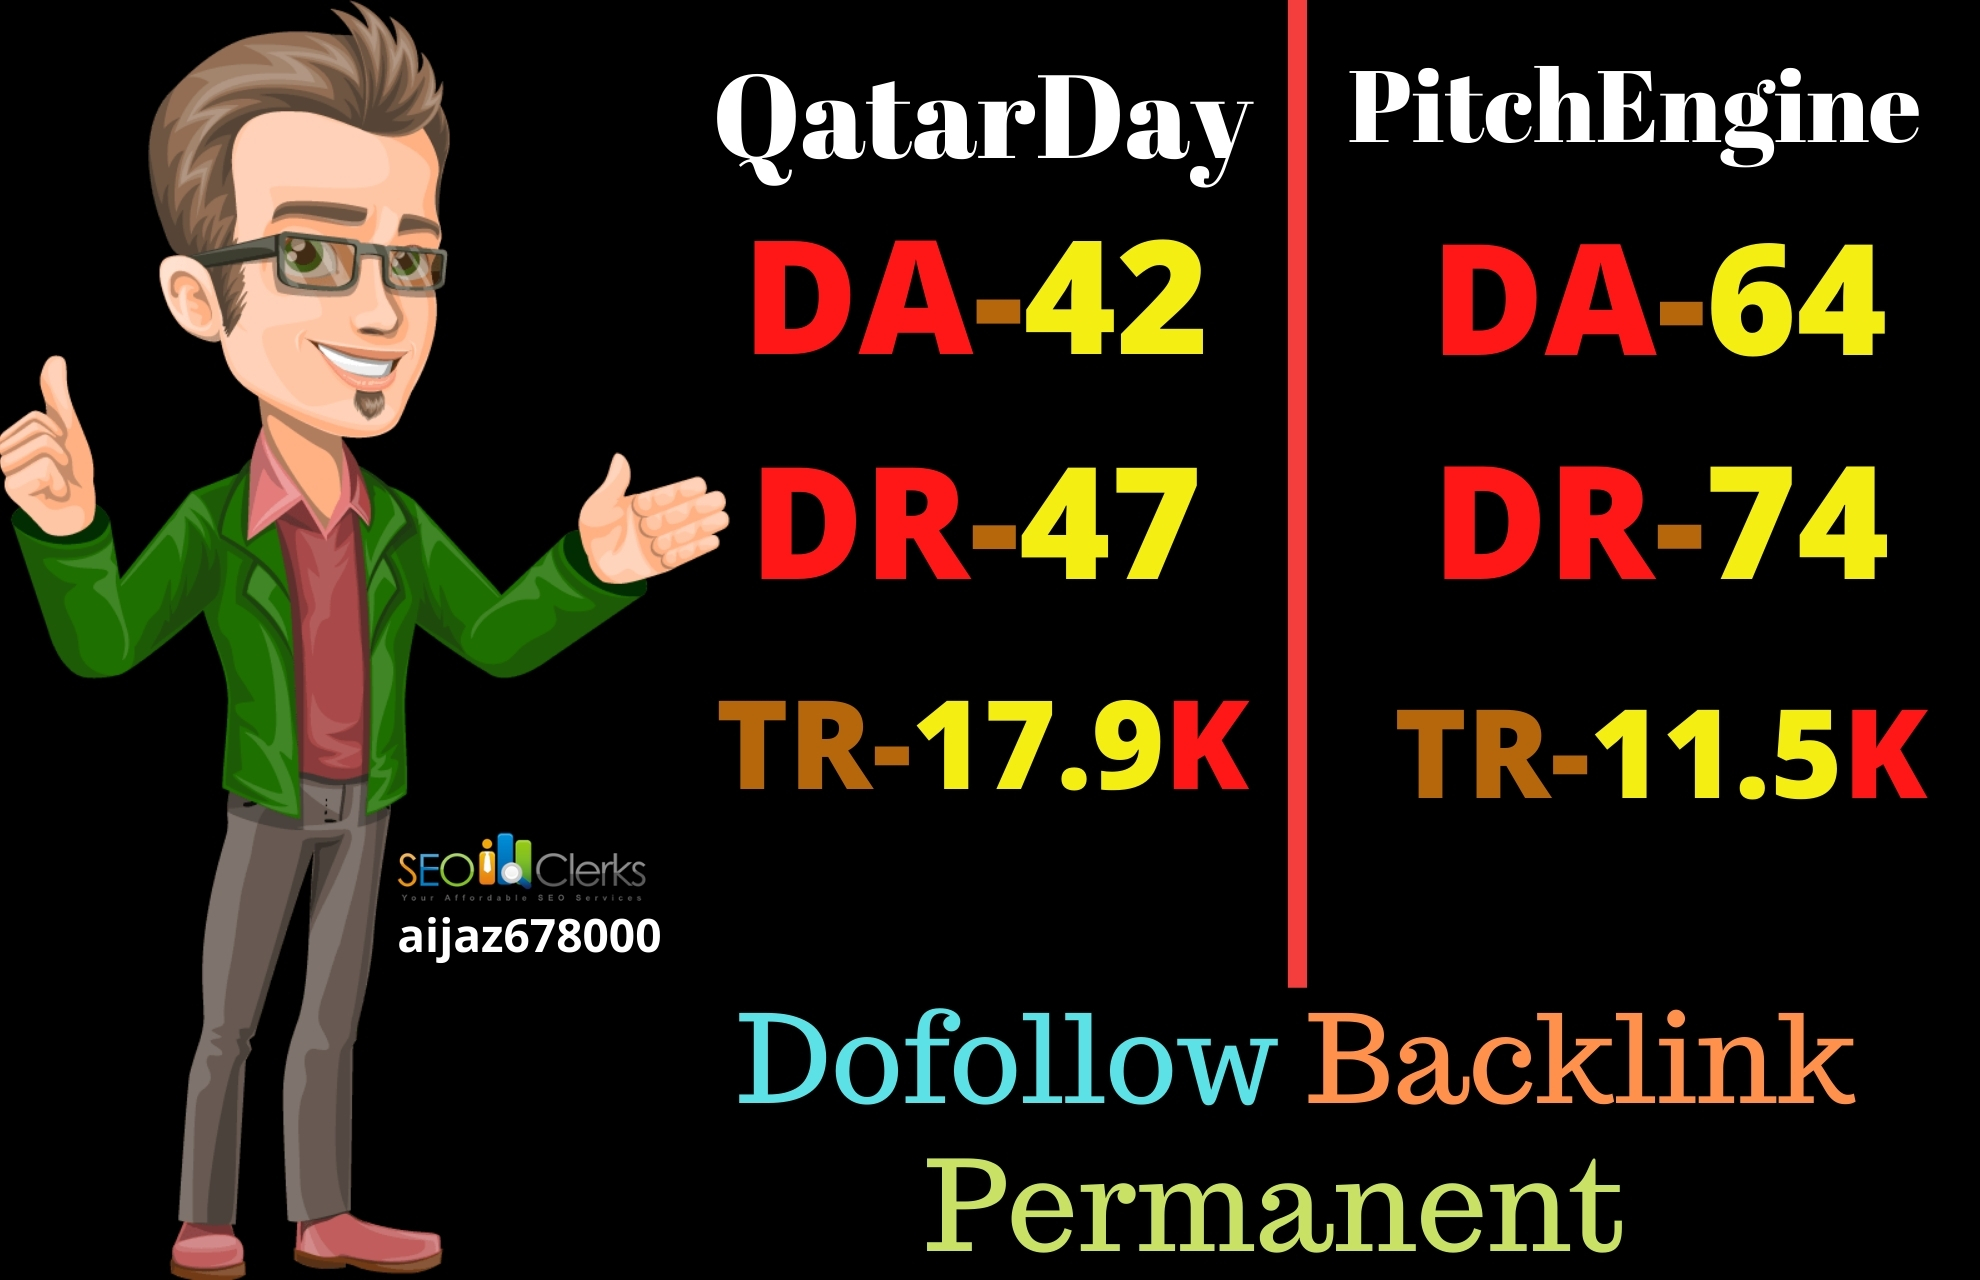 I will write and publish on high quality sites QatarDay and PitchEngine with dofollow backlinks